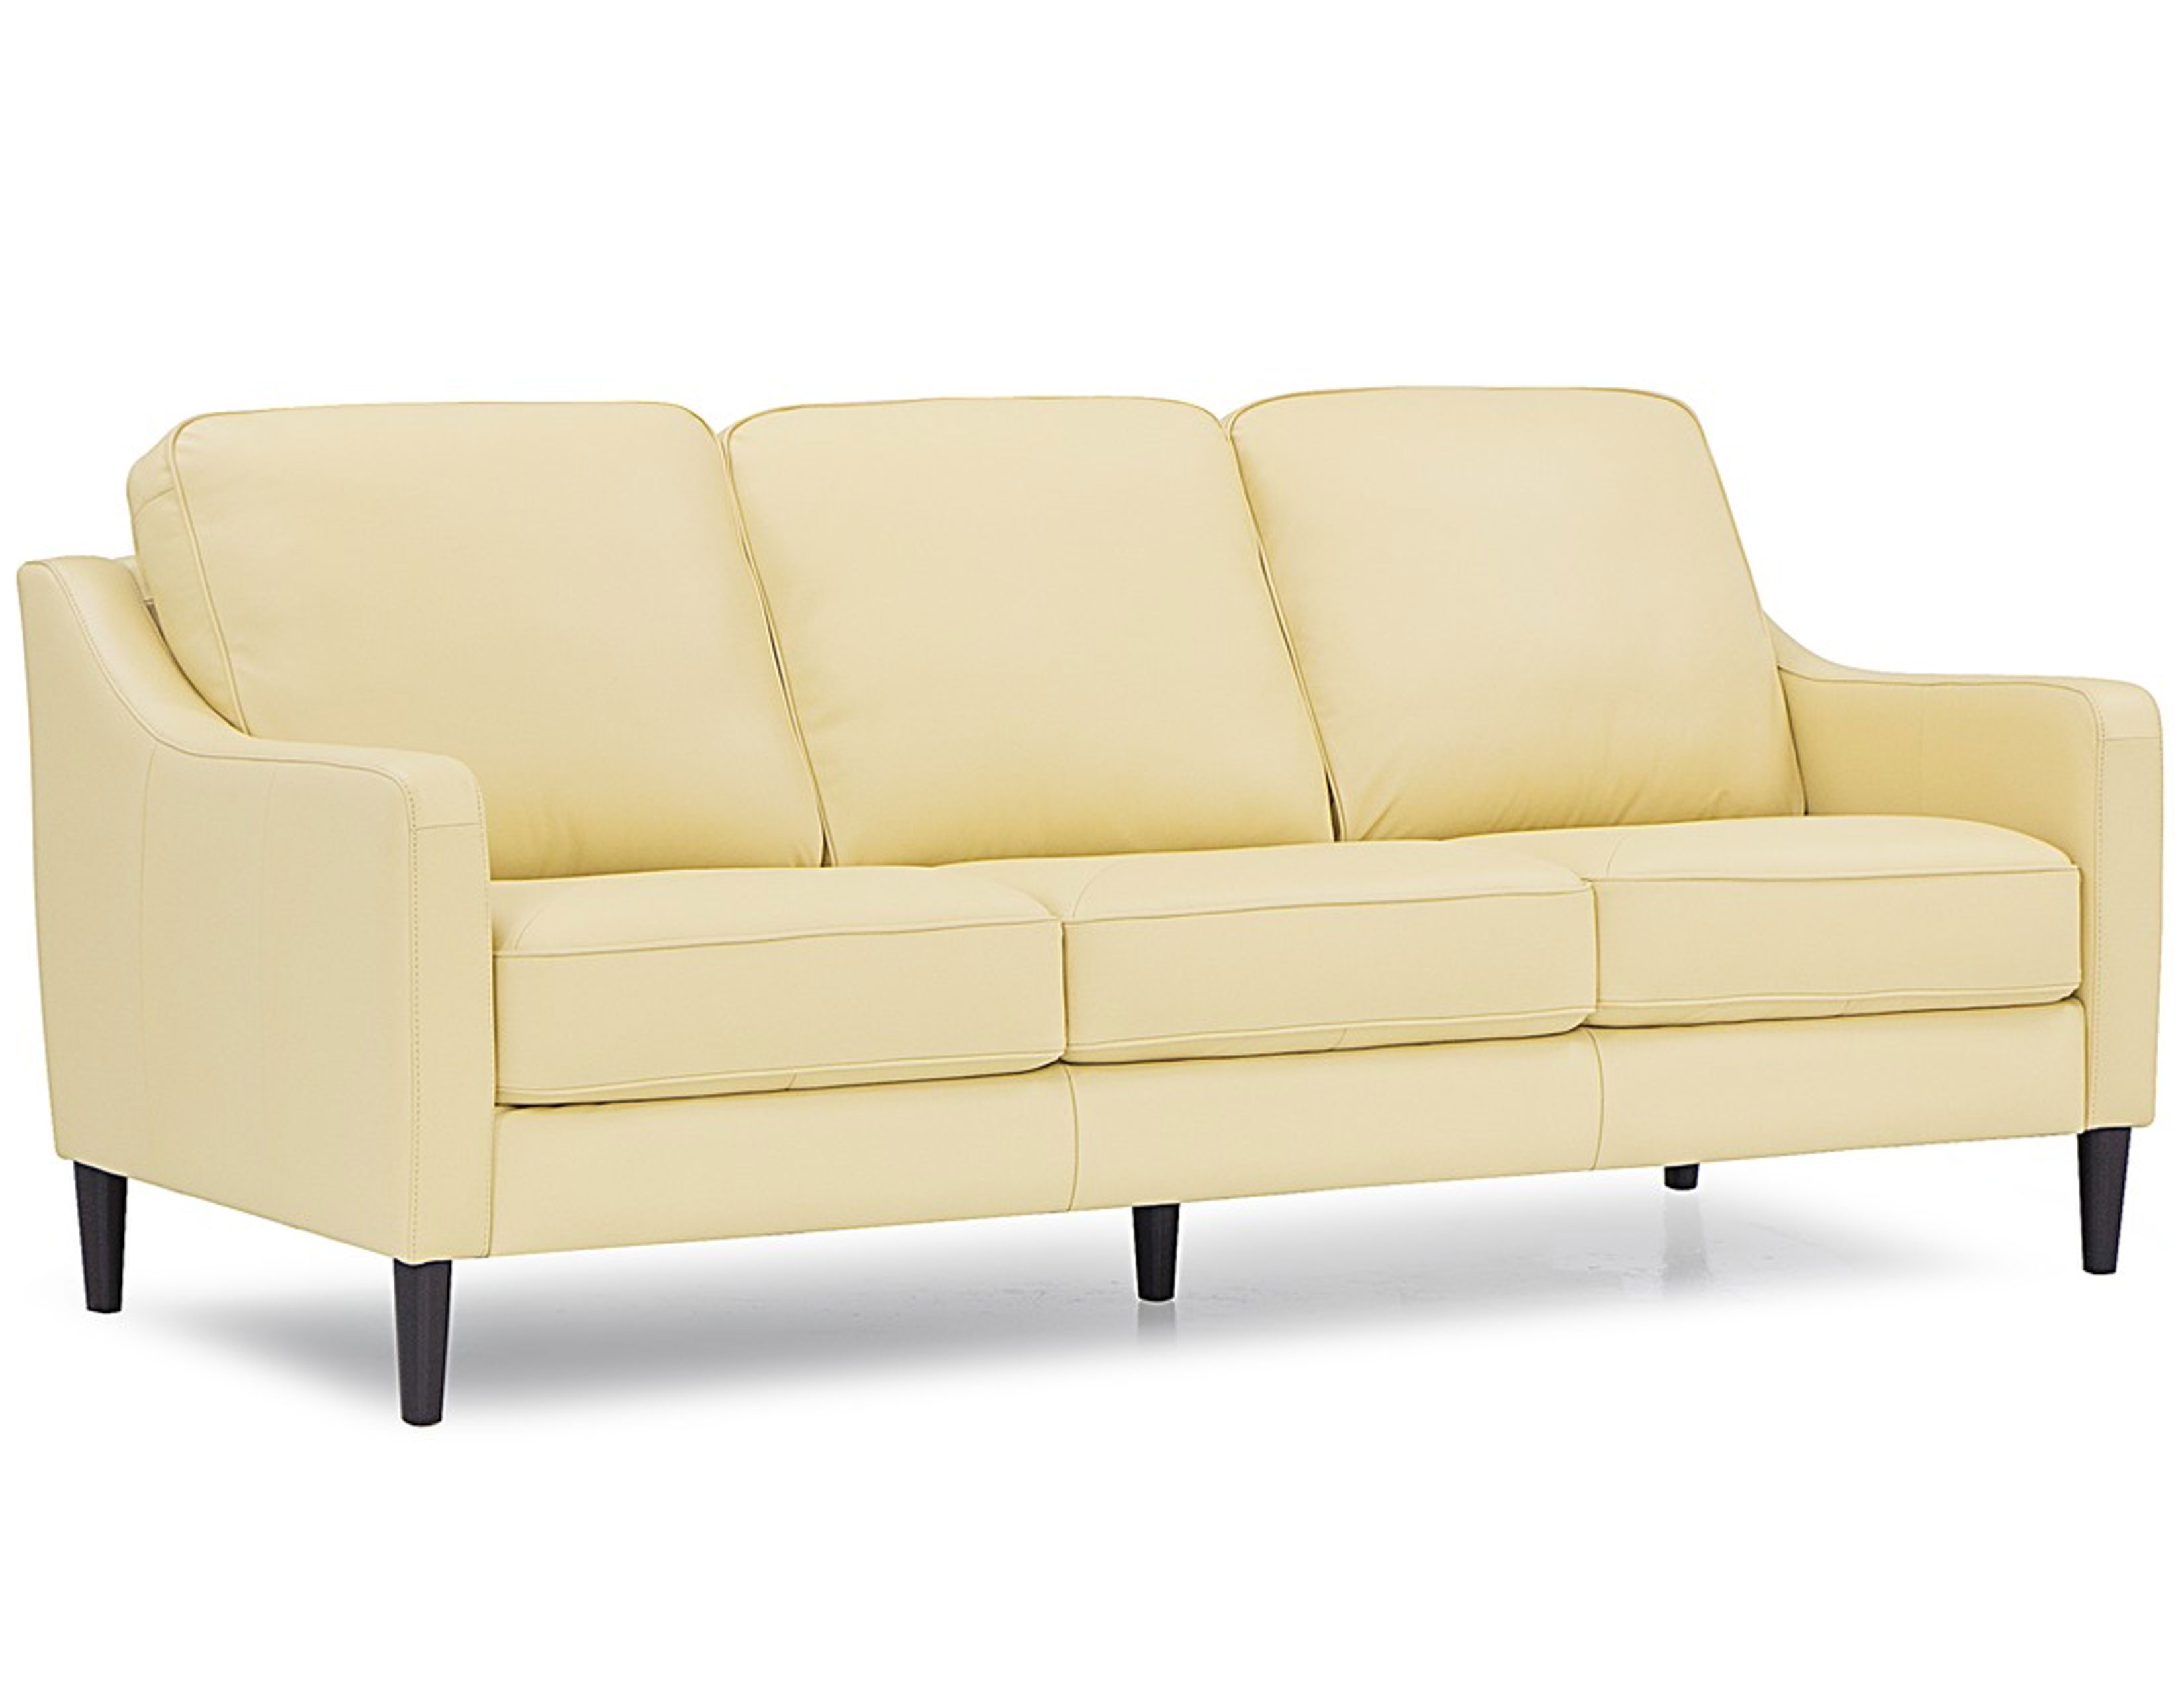 Pleasant Andros 77780 70780 Sofa Collection 350 Sofas And Ibusinesslaw Wood Chair Design Ideas Ibusinesslaworg